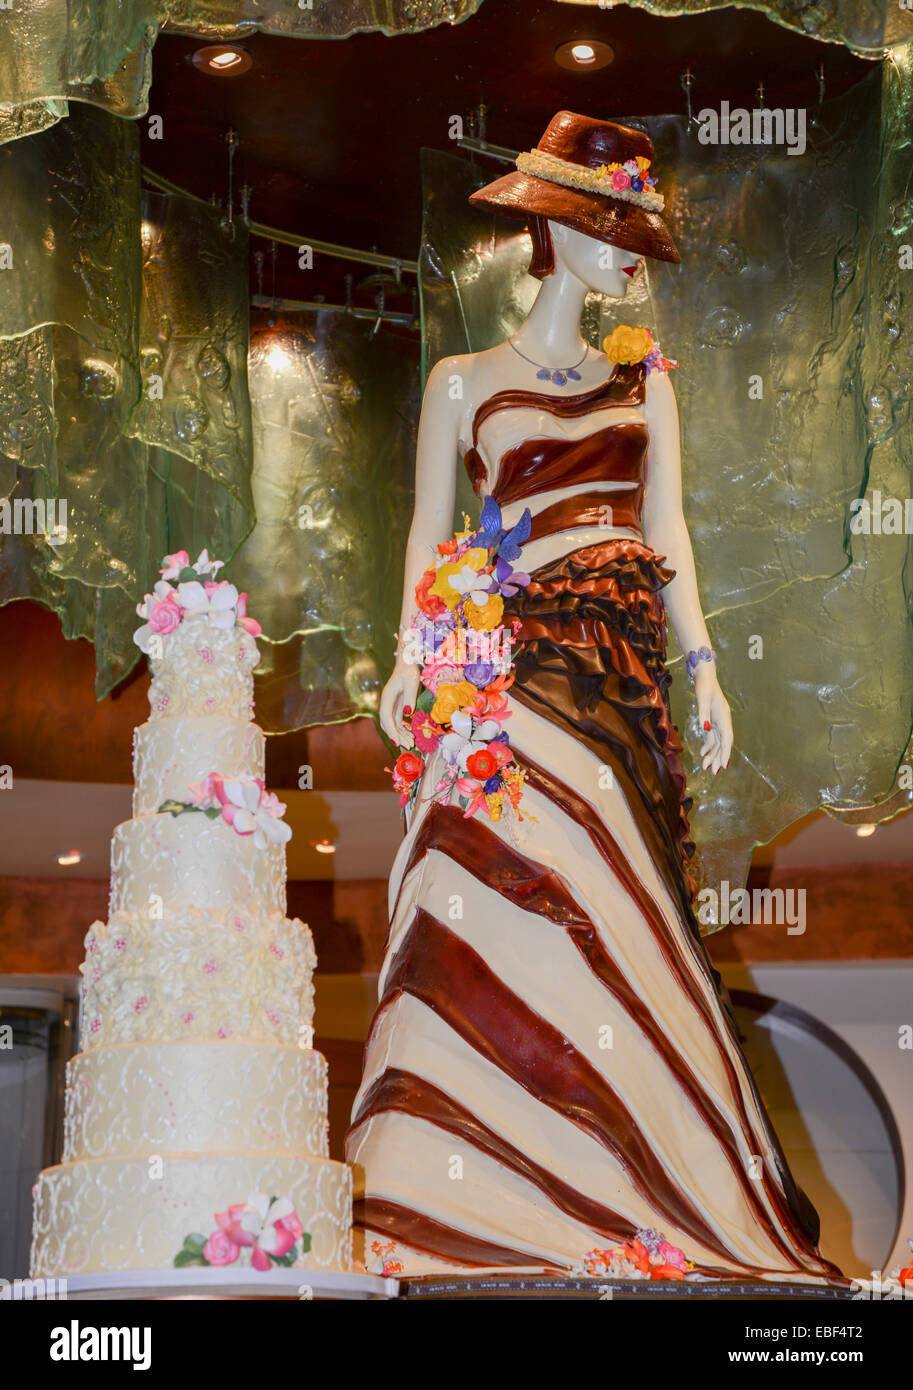 Chocolate model and a wedding cake made from 120lbs of chocolate ...